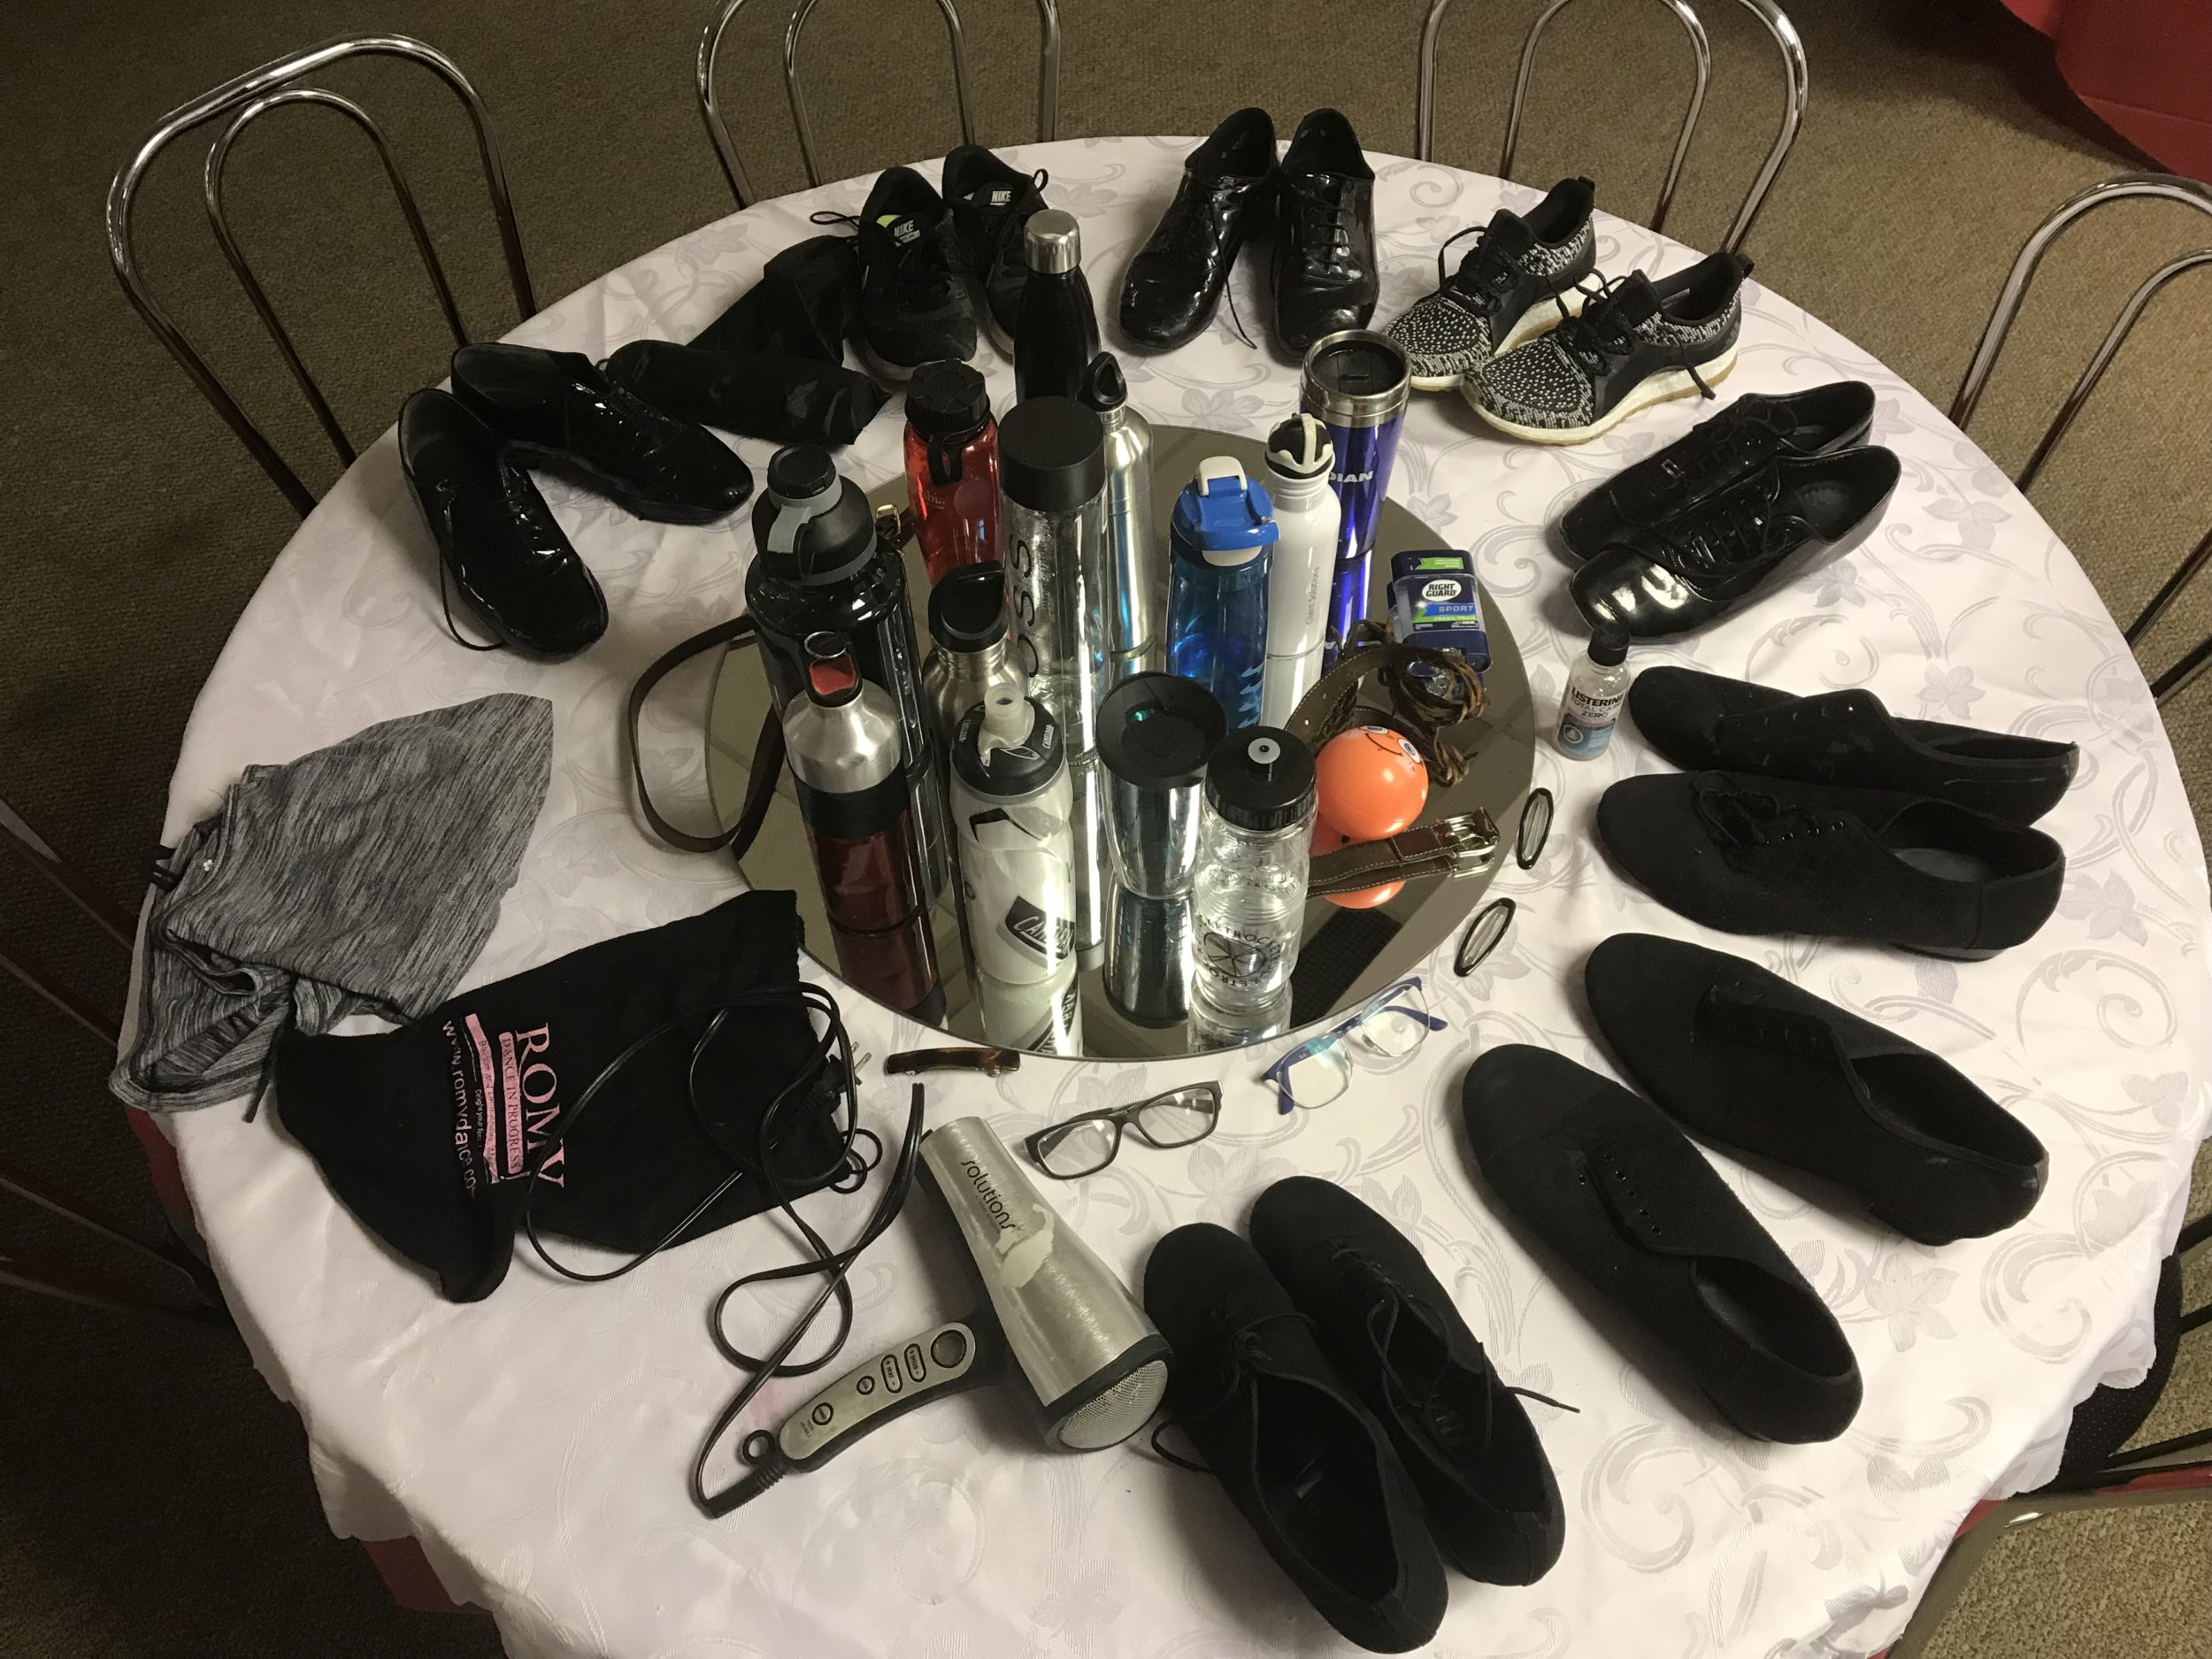 The Continental Dance Club LOST & FOUND and SPRING CLEANING EARLY…